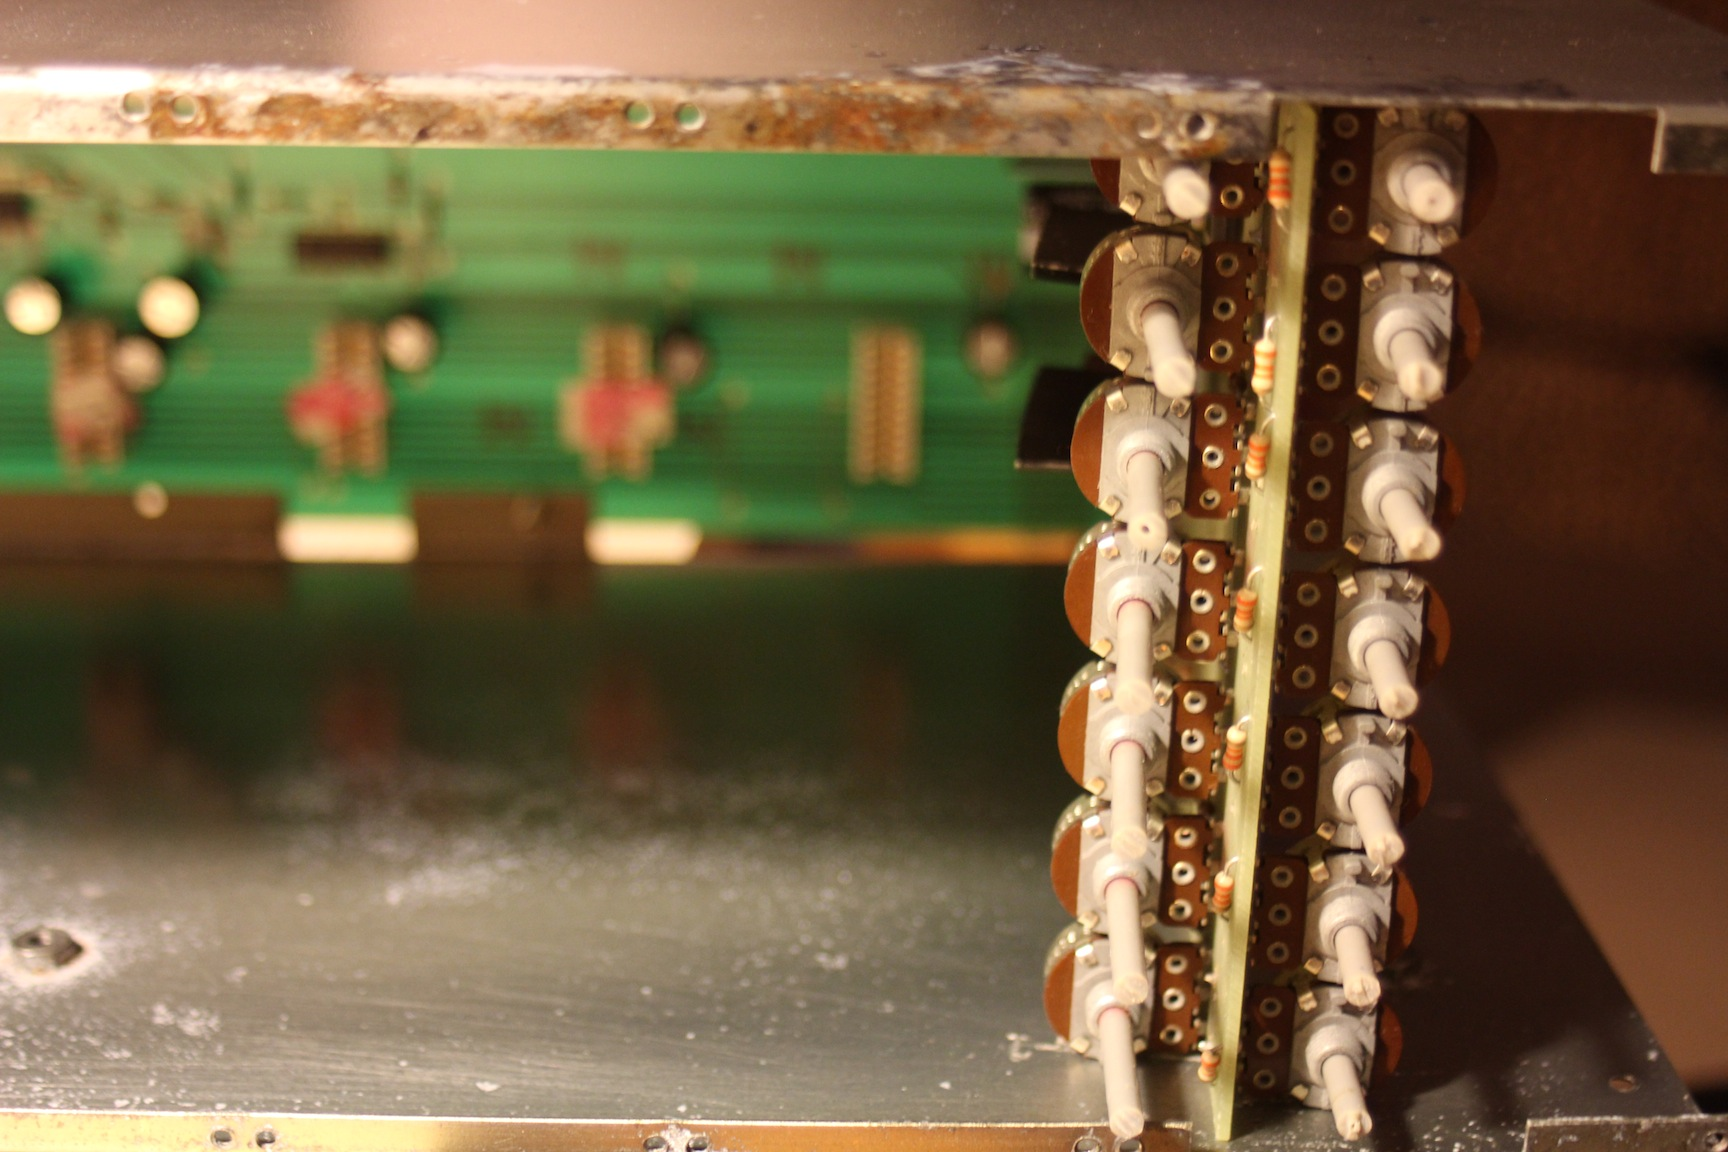 control-panel-pots-and-corrosion.jpg